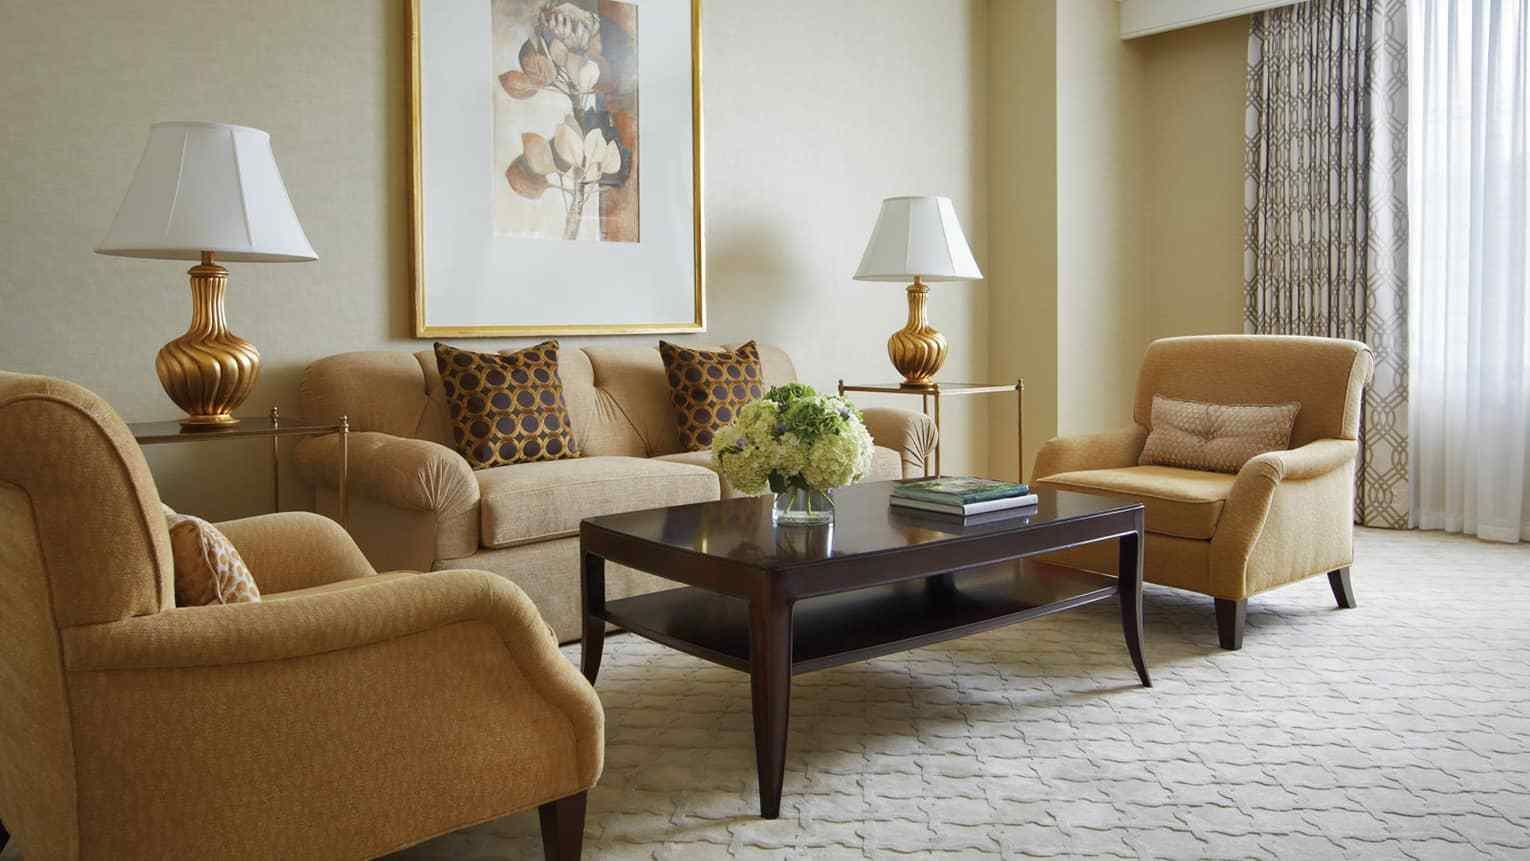 Best Two Bedroom Hotel Suite In Atlanta Luxury Hotel Four With Pictures